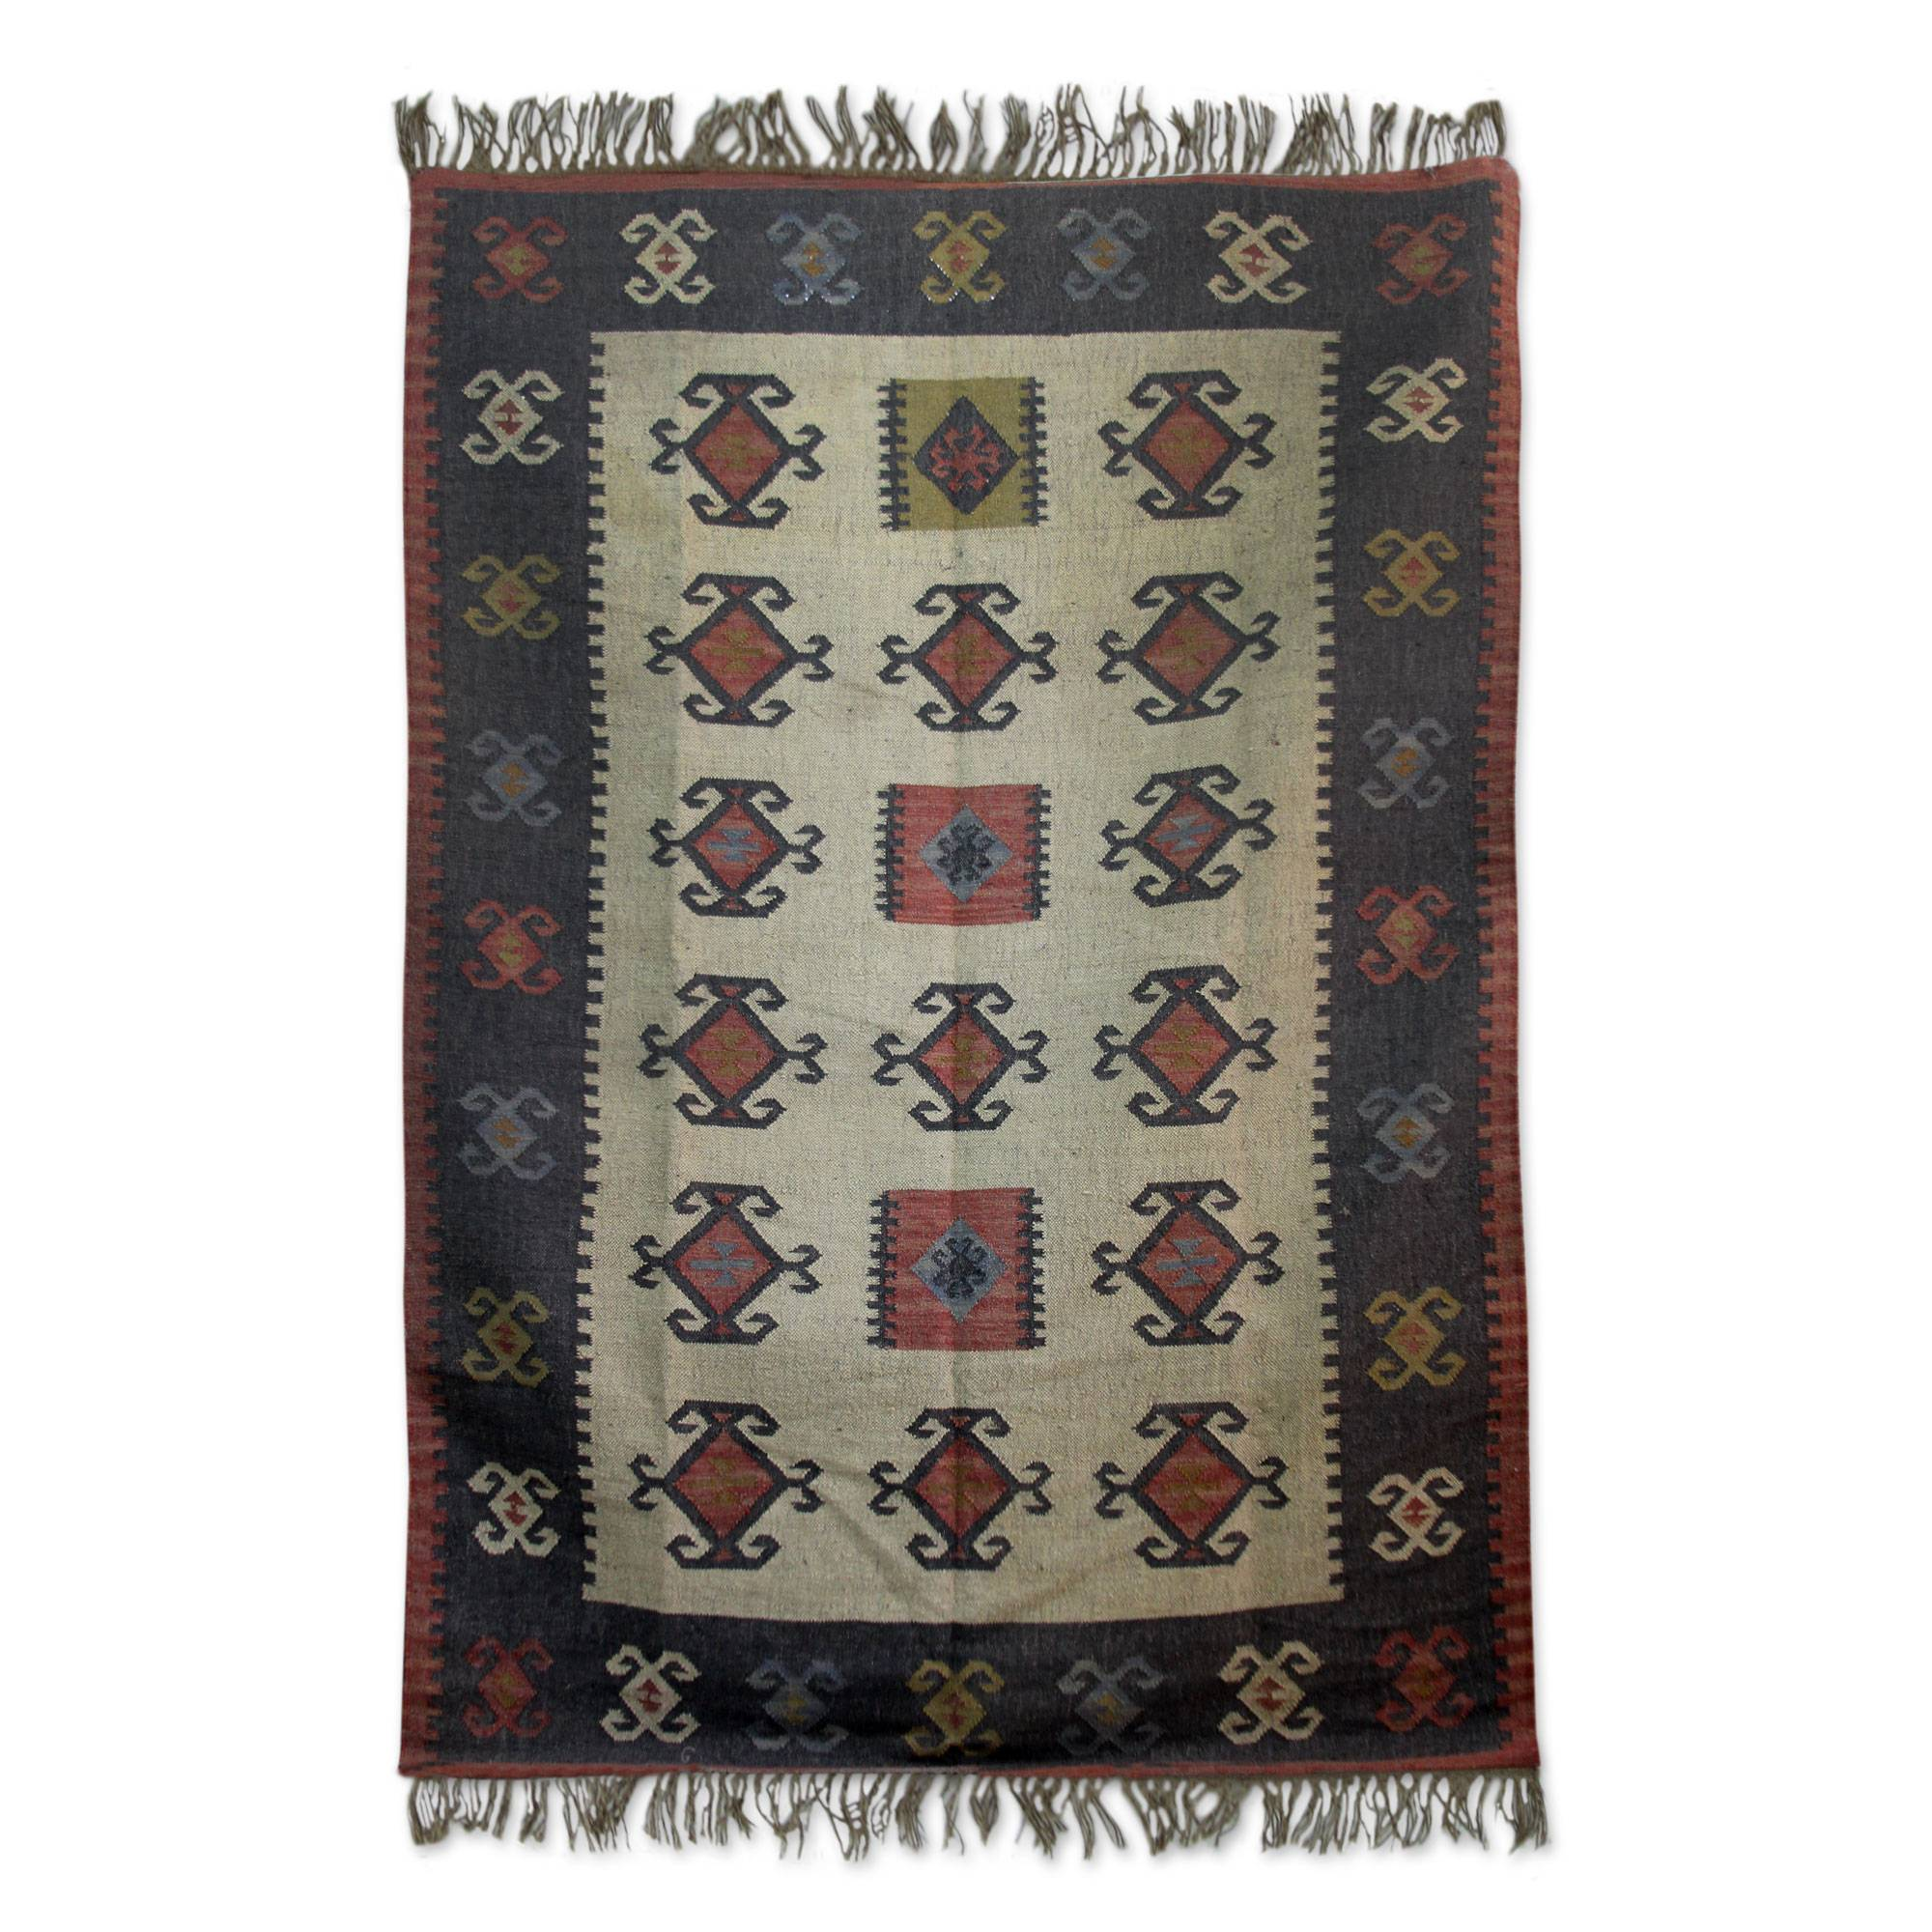 Multicolored Jute Area Rug Hand Loomed In